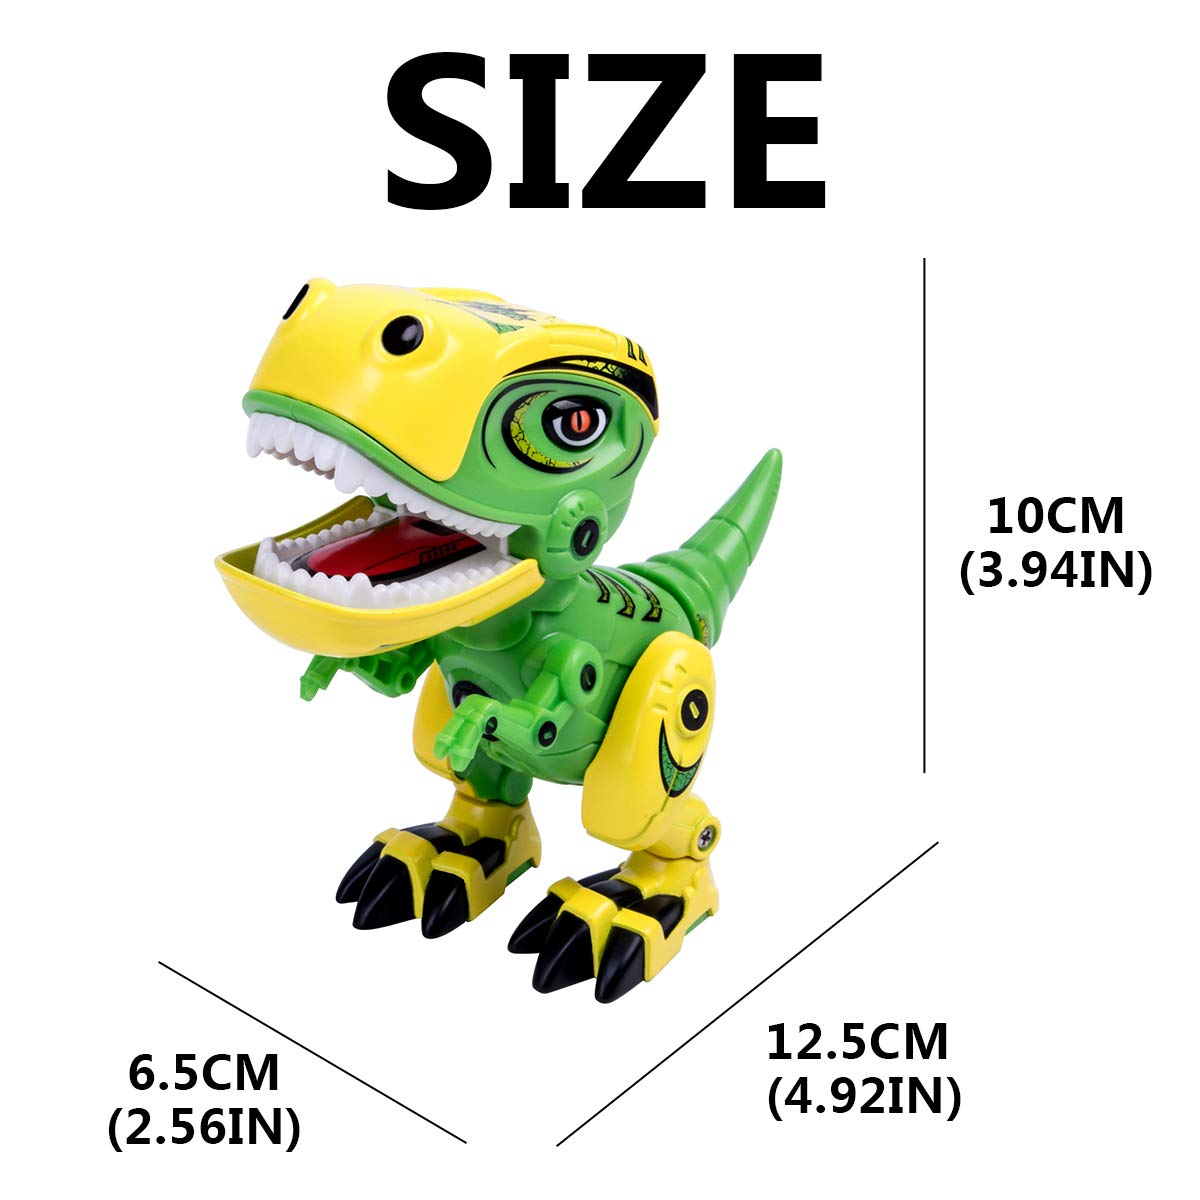 GILOBABY Dinosaur Toys for Kids, Alloy Metal Mini Tyrannosaurus Rex Dinosaur with Shine Eyes and Roaring Sound, Flexible Body, Gift for Toddlers Boys Girls (Green) by GILOBABY (Image #7)